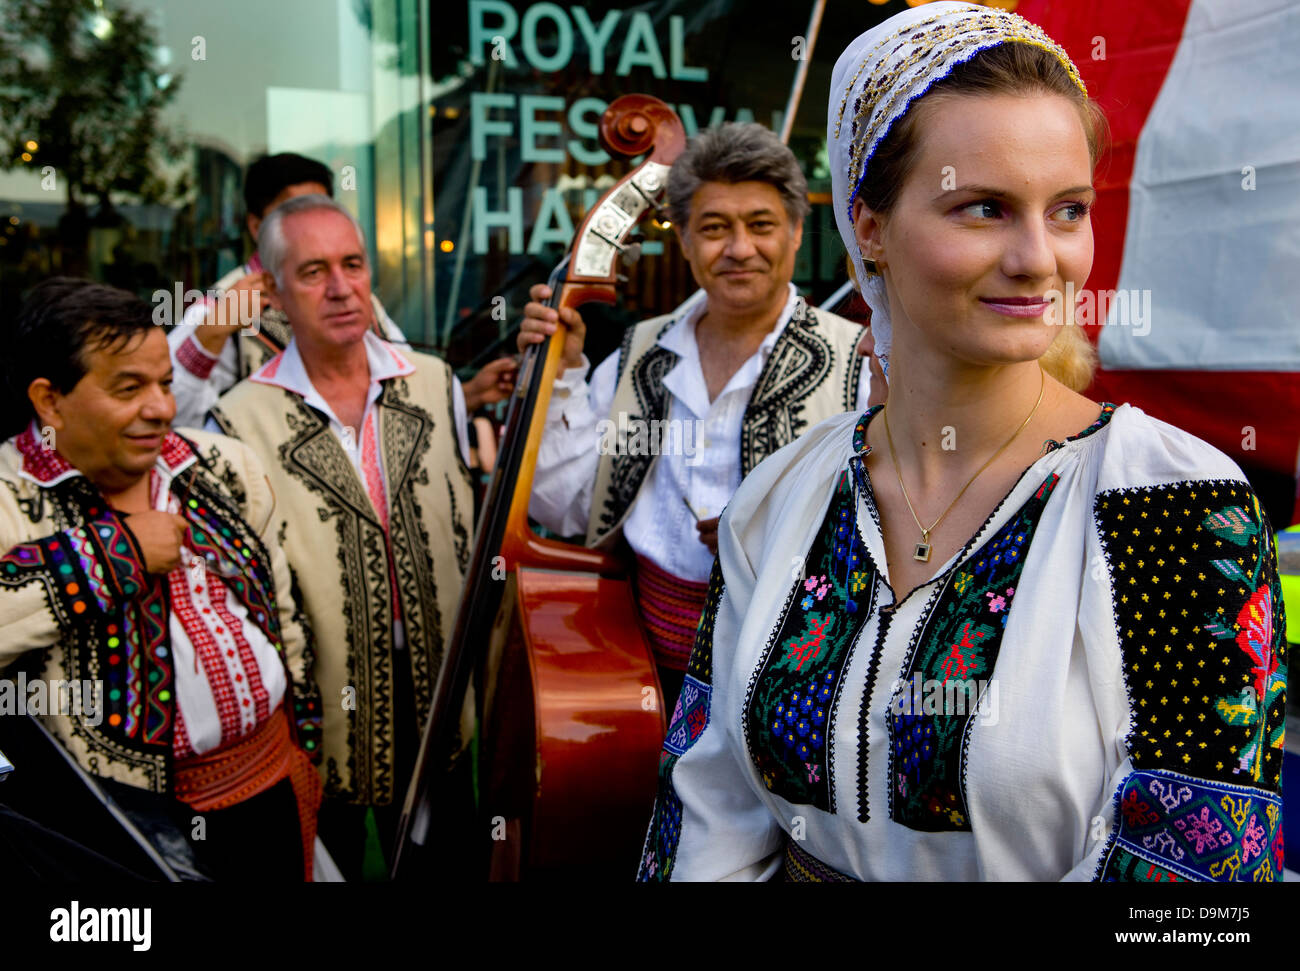 Romanian folk band, along the southbank of the Thames. Thames Festival 2008 - Stock Image